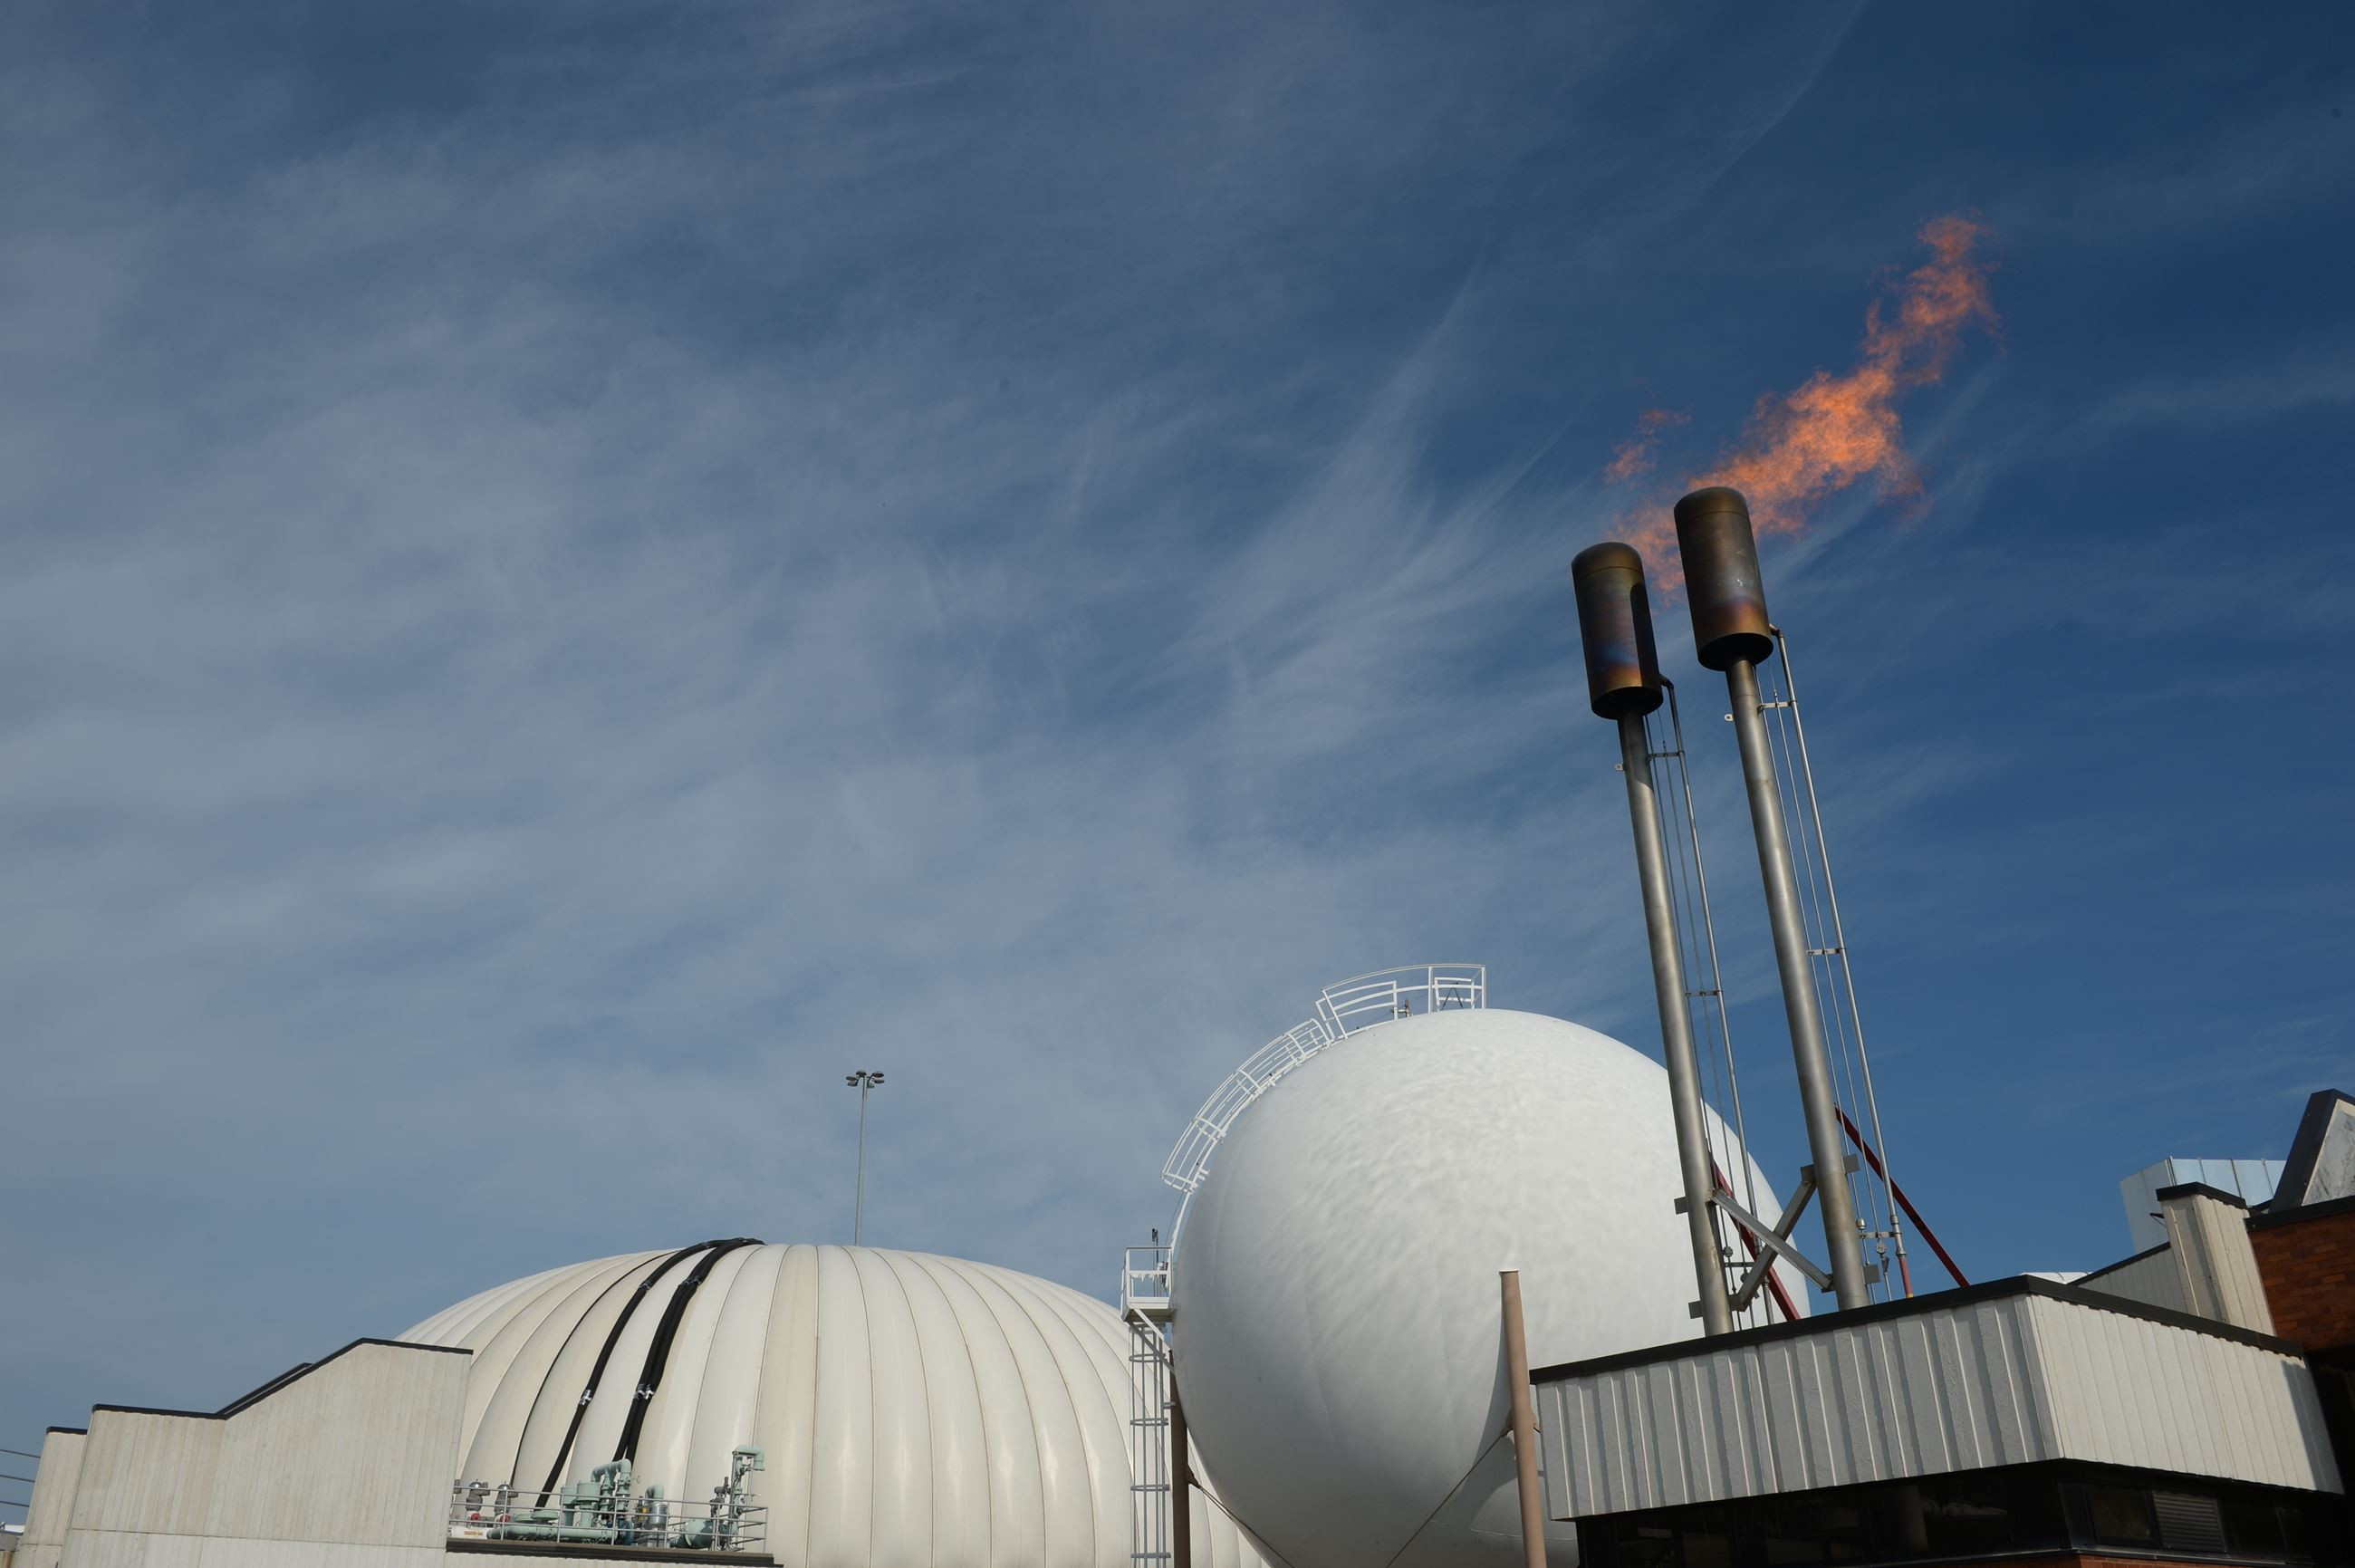 Anaerobic Digestion Biogas Waste Flare